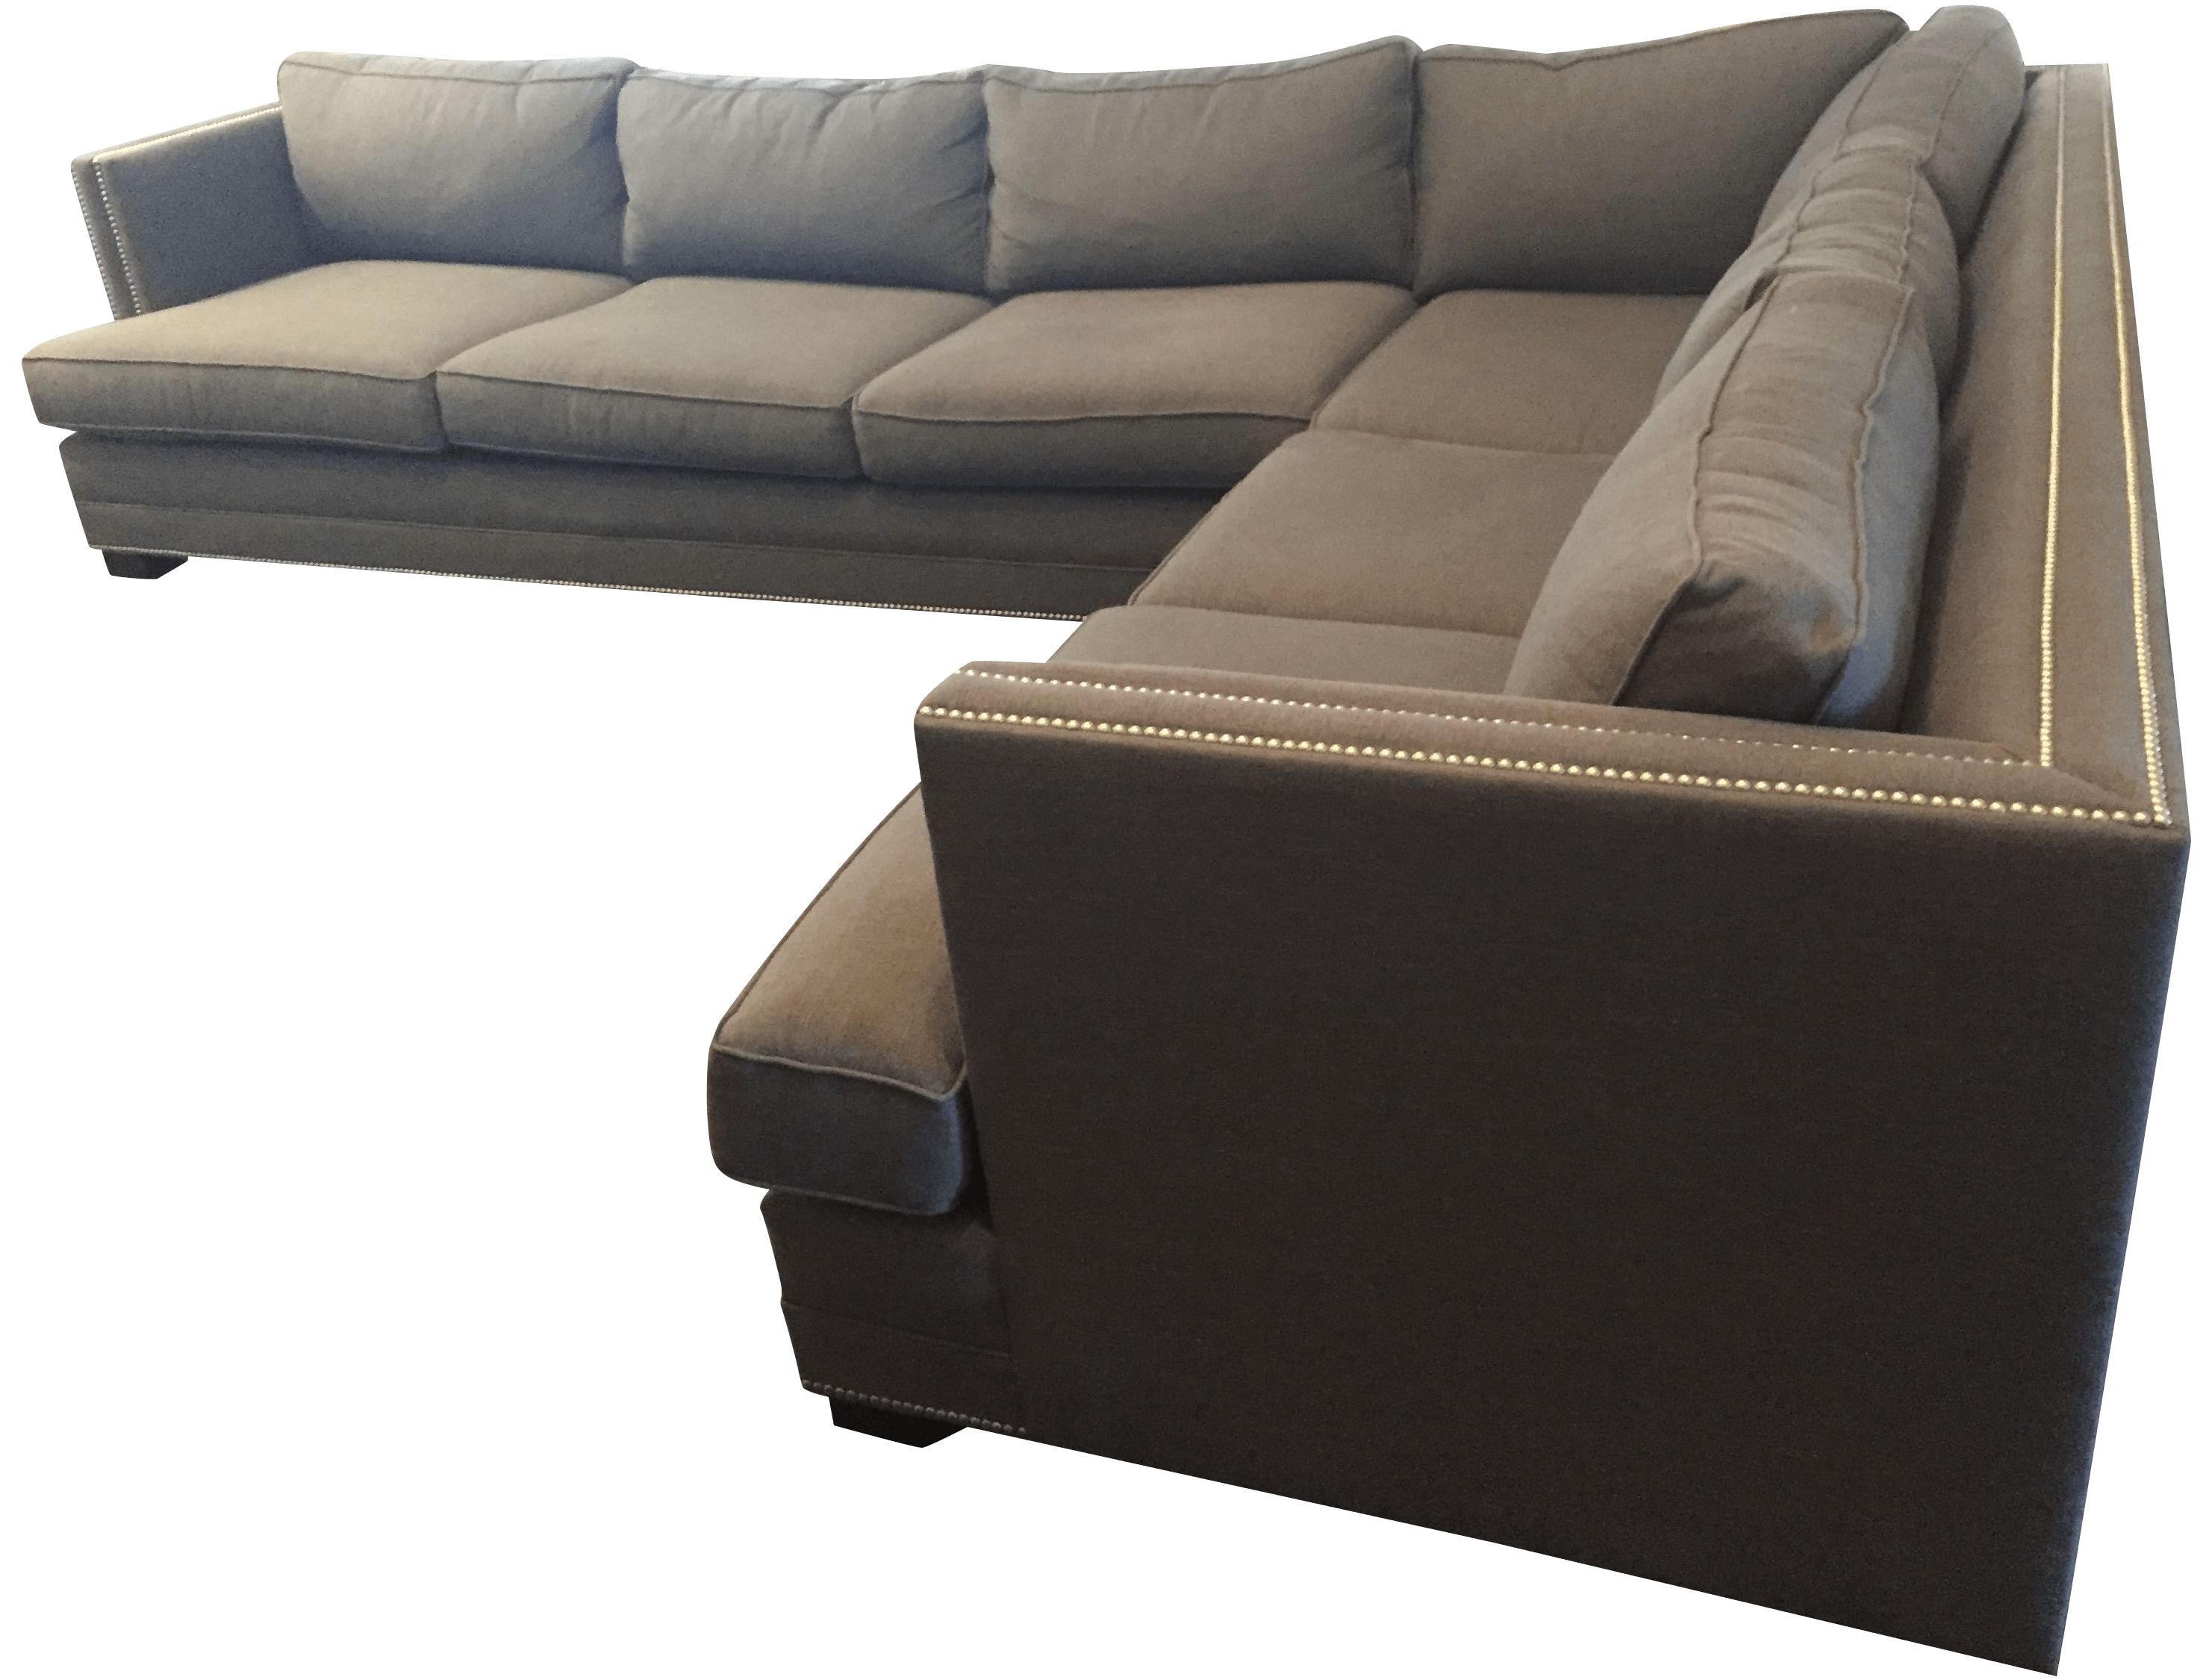 mitchell gold sectional sofa extra large sofas with chaise 43 bob williams keaton chairish